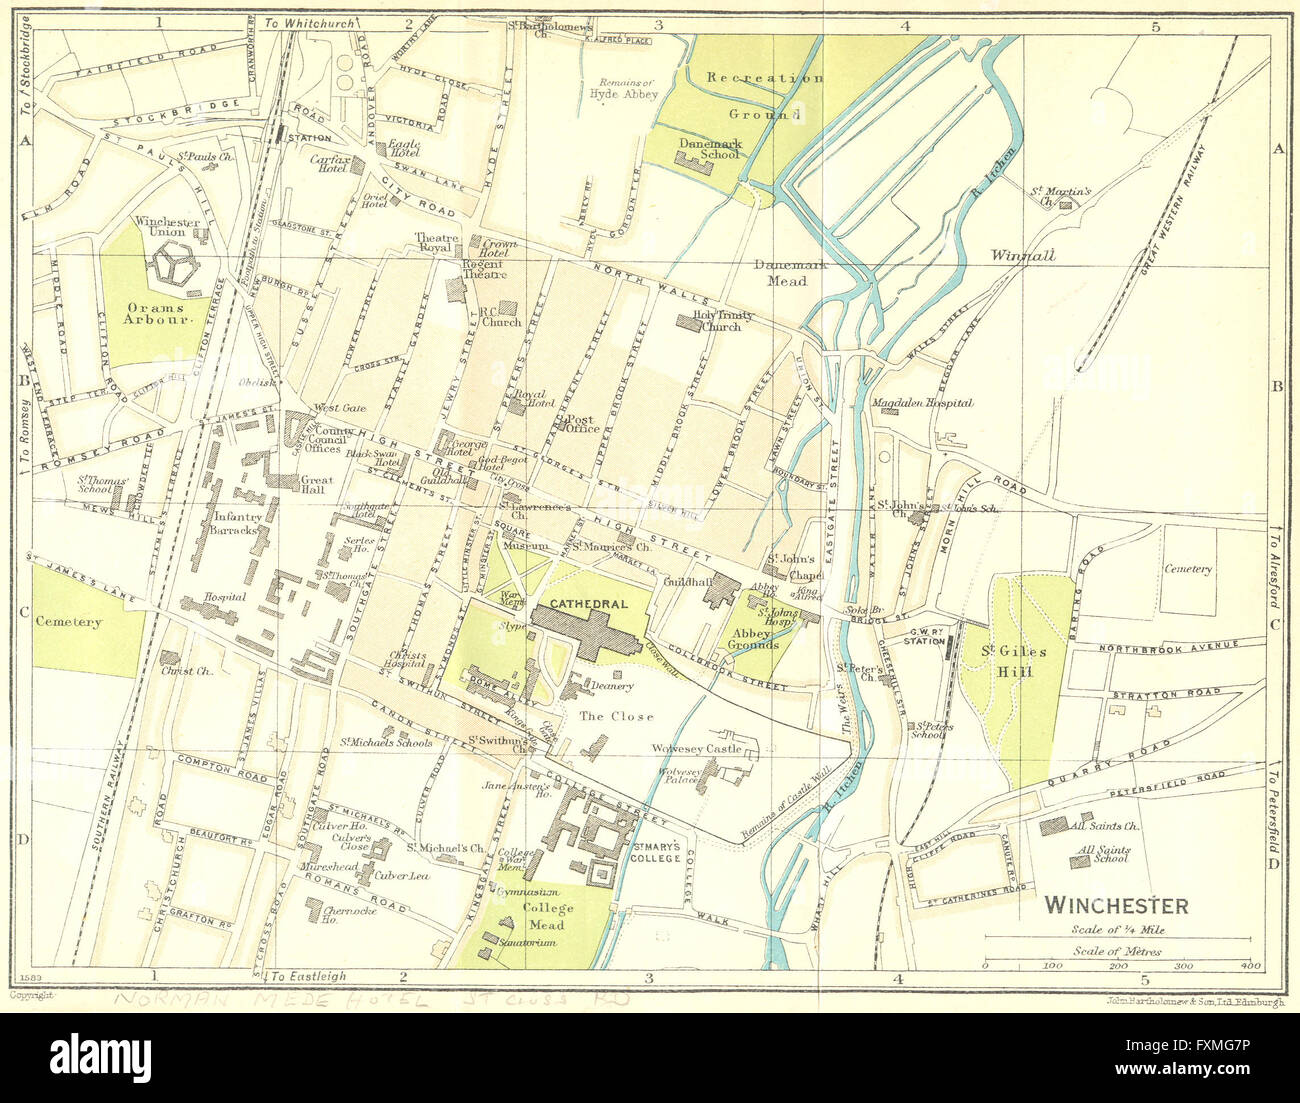 HANTS: Winchester, 1930 vintage map - Stock Image